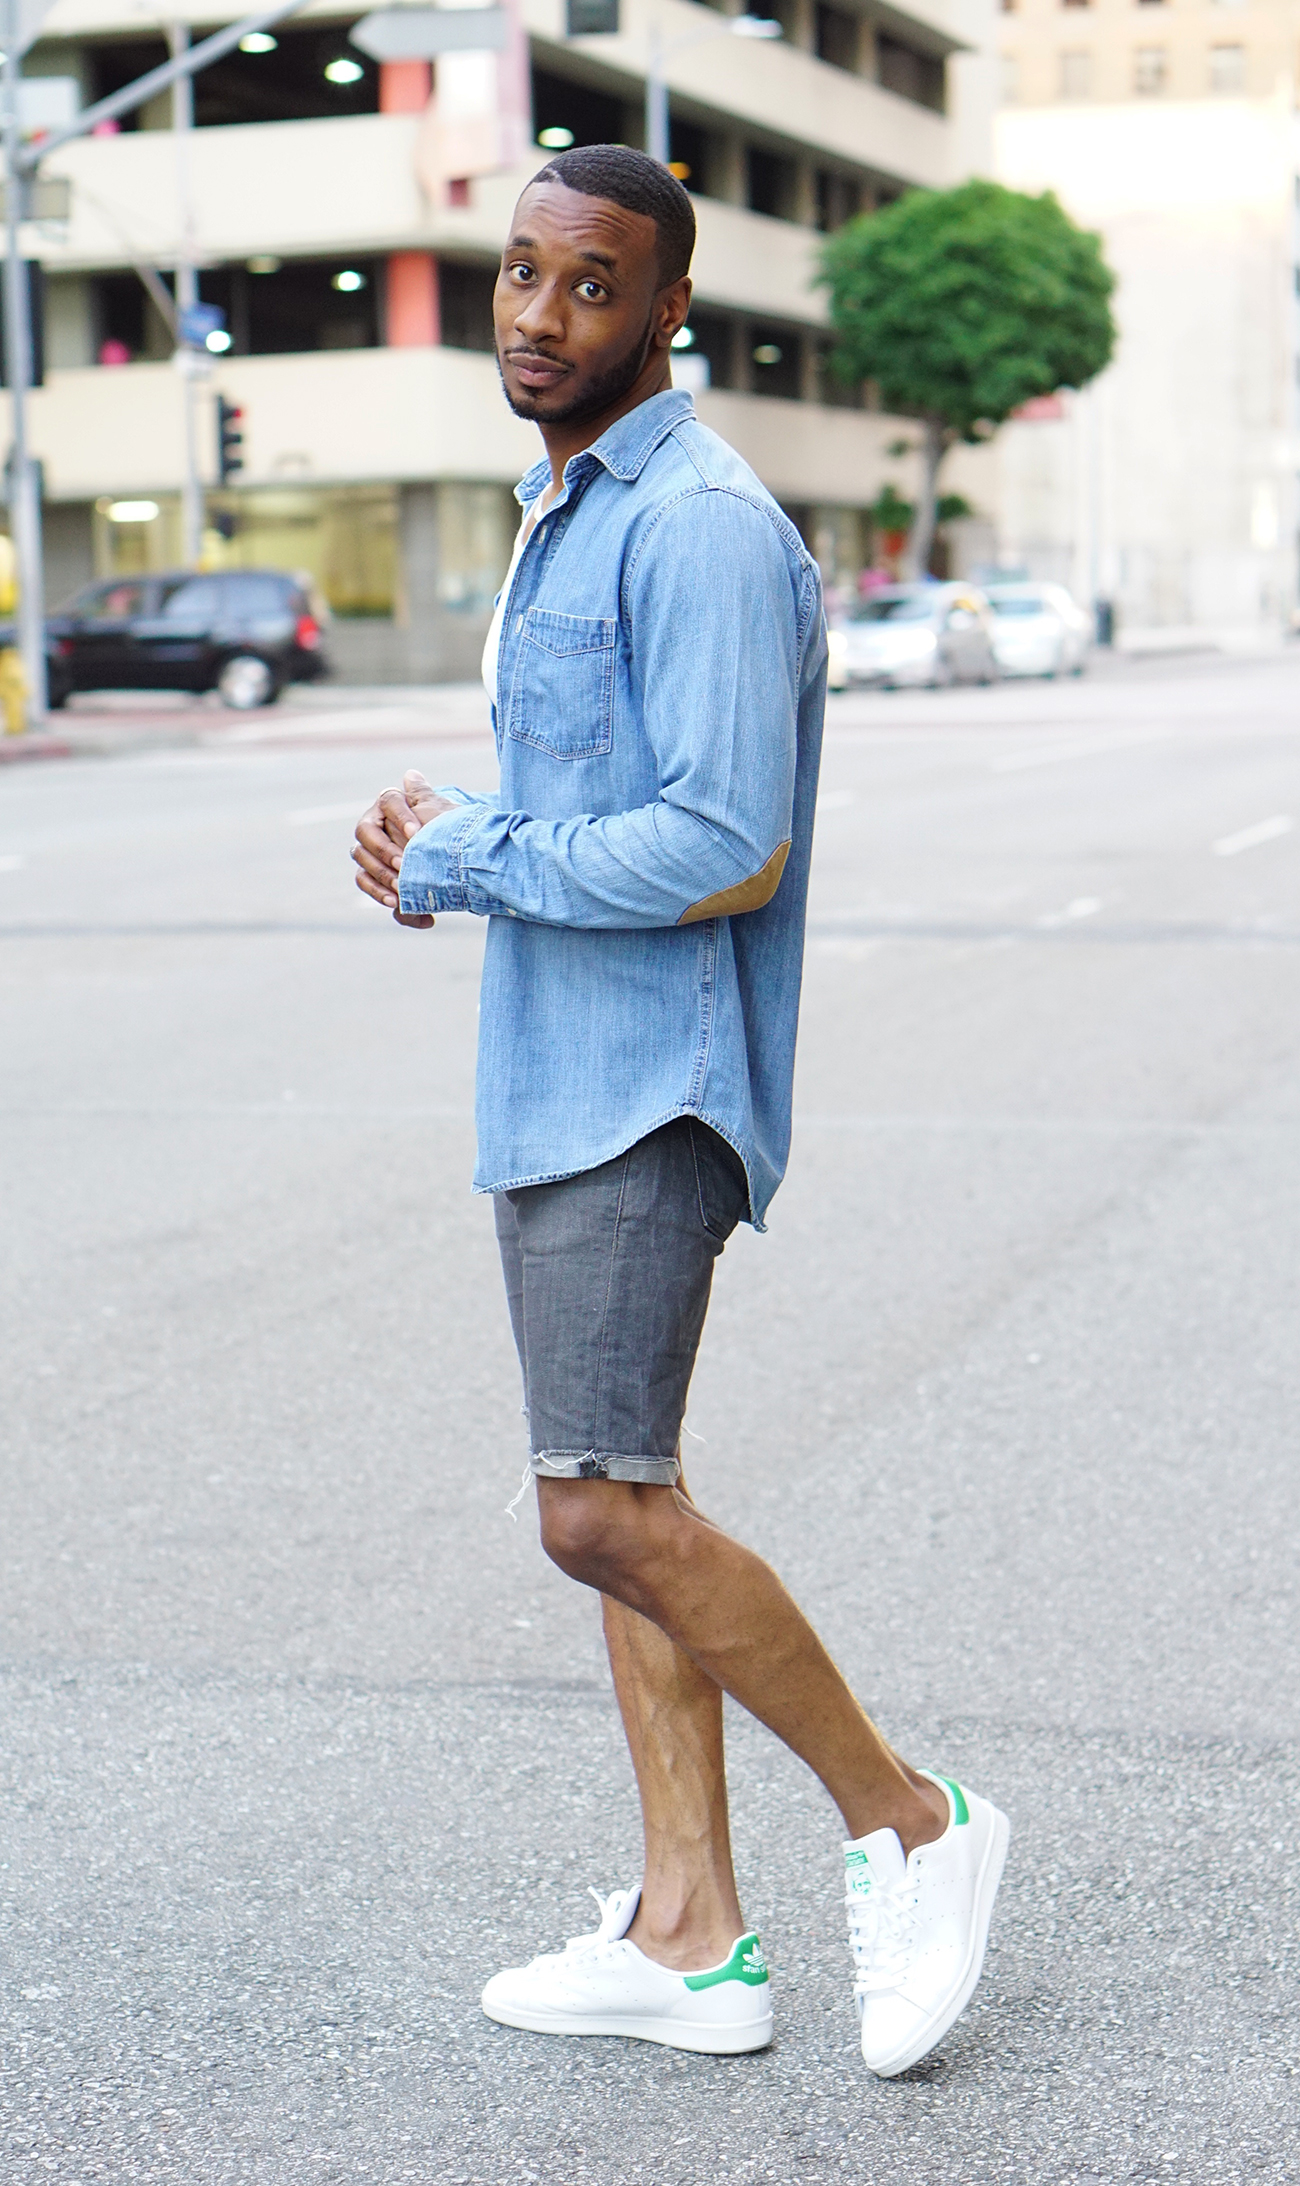 Ootd Dressing Down With Denim Shorts Norris Danta Ford